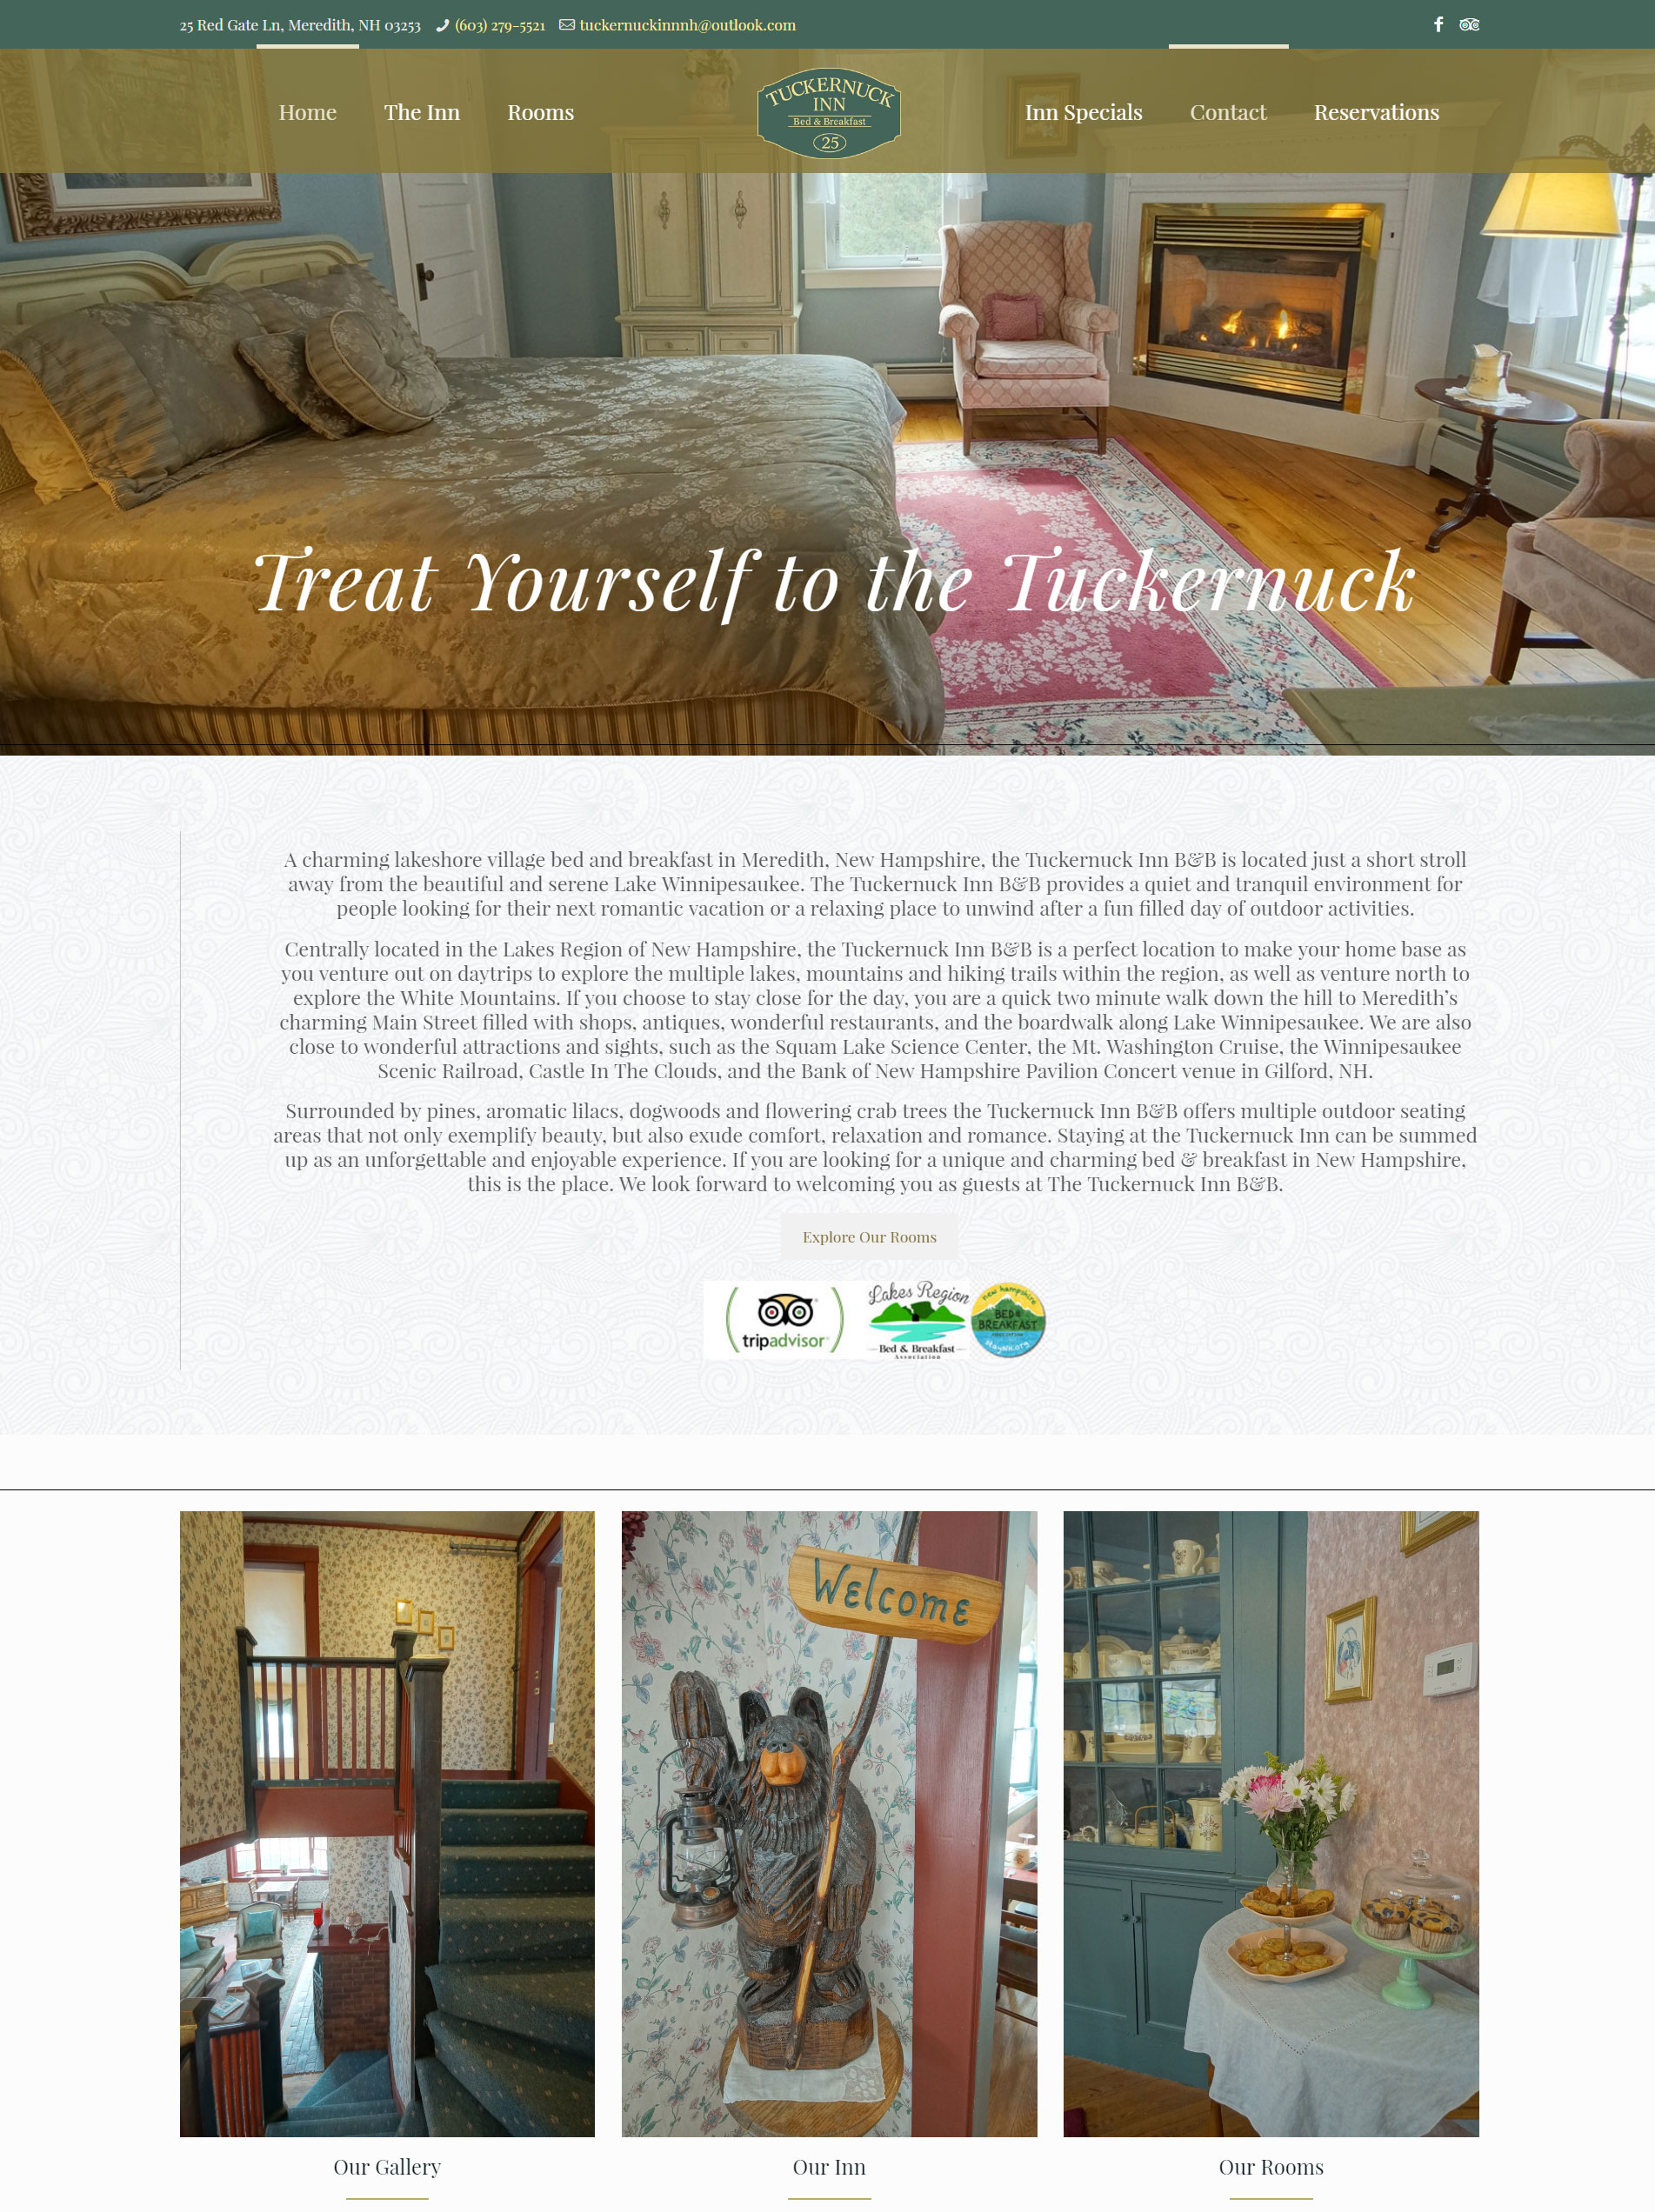 Tuckernuck-Inn-Bed---Breakfast-Meredith-New-Hampshire